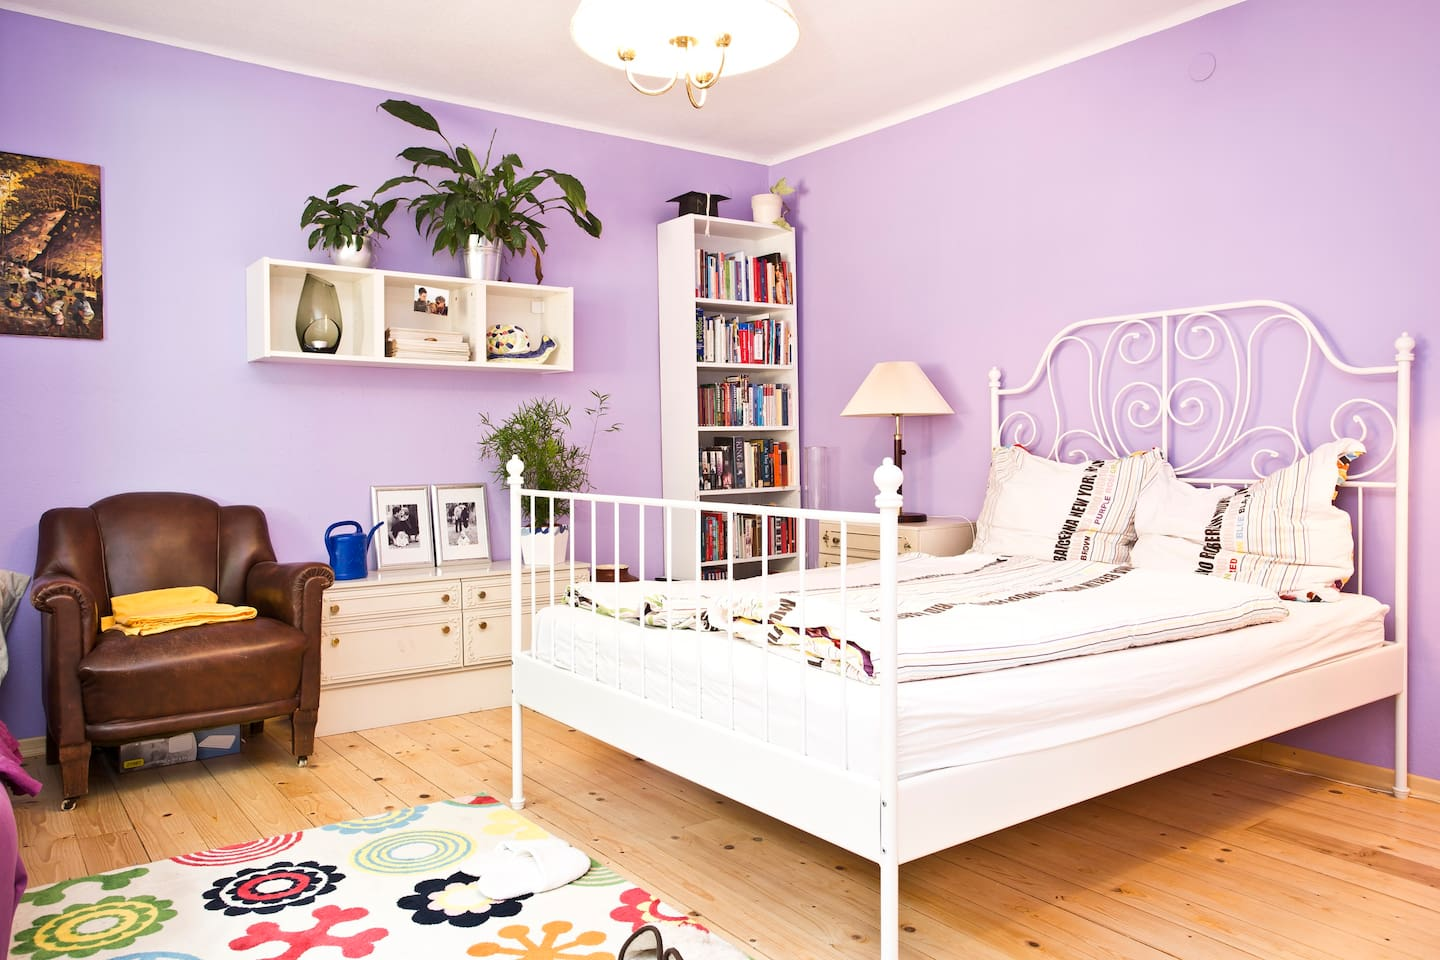 Guest room (upstairs): queen sized bed, couch, and baby bed (if needed)